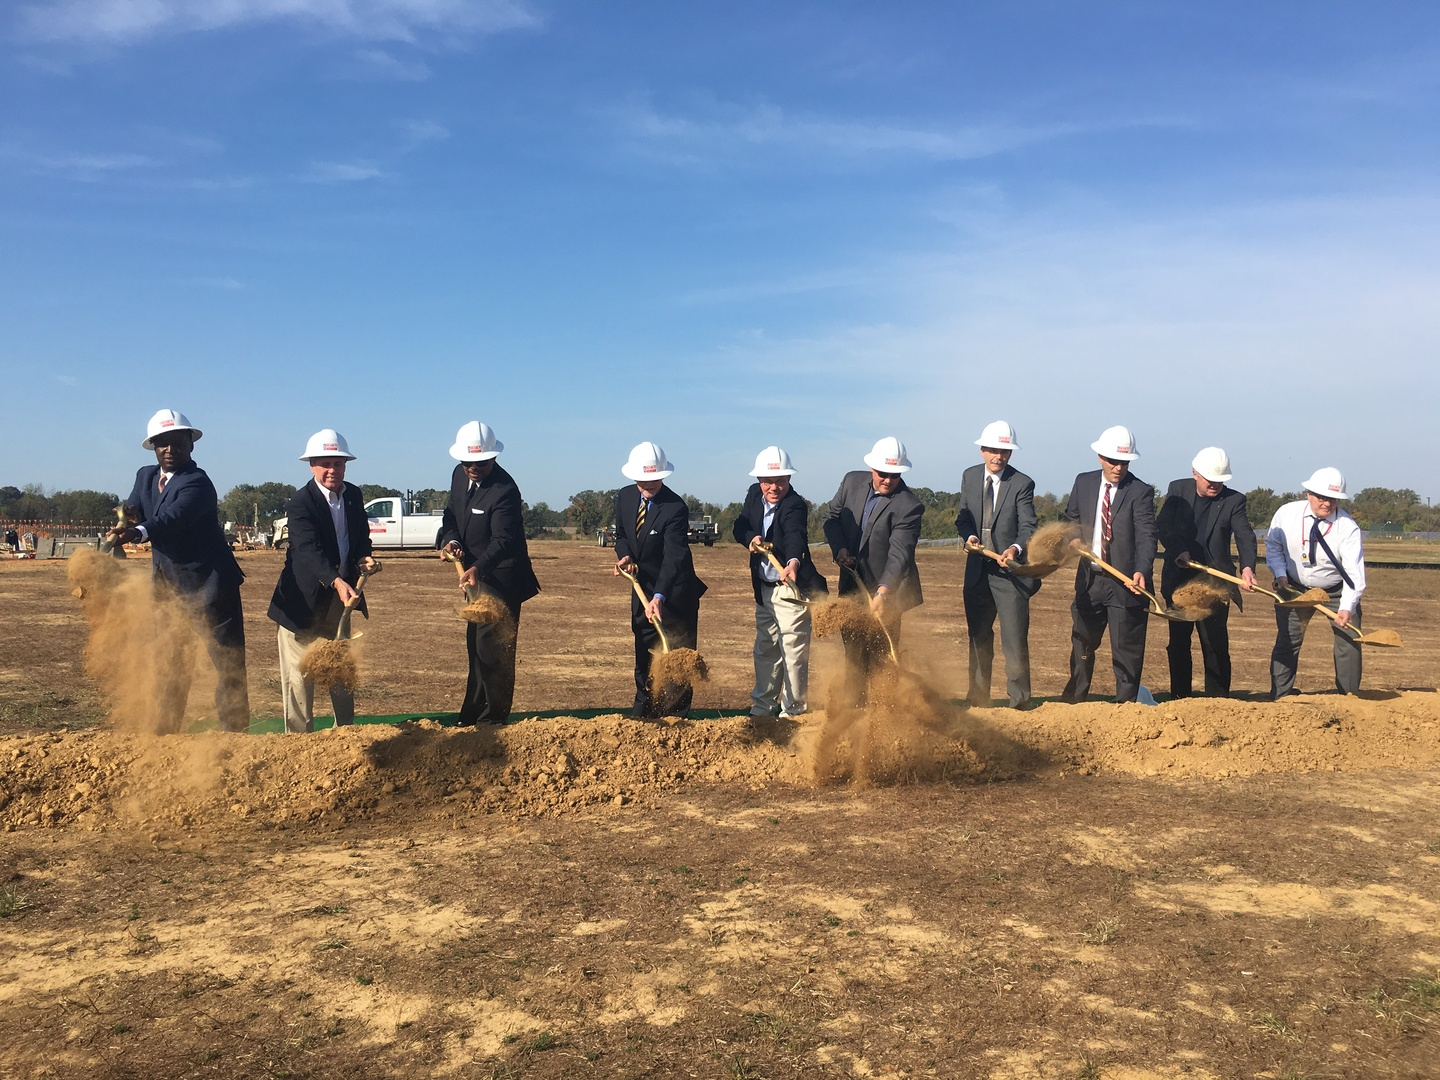 Tennessee haywood county brownsville - Haywood County Tenn The Tennessee Departments Of Transportation And Tourist Development Held A Groundbreaking Ceremony For The New I 40 Solar Farm